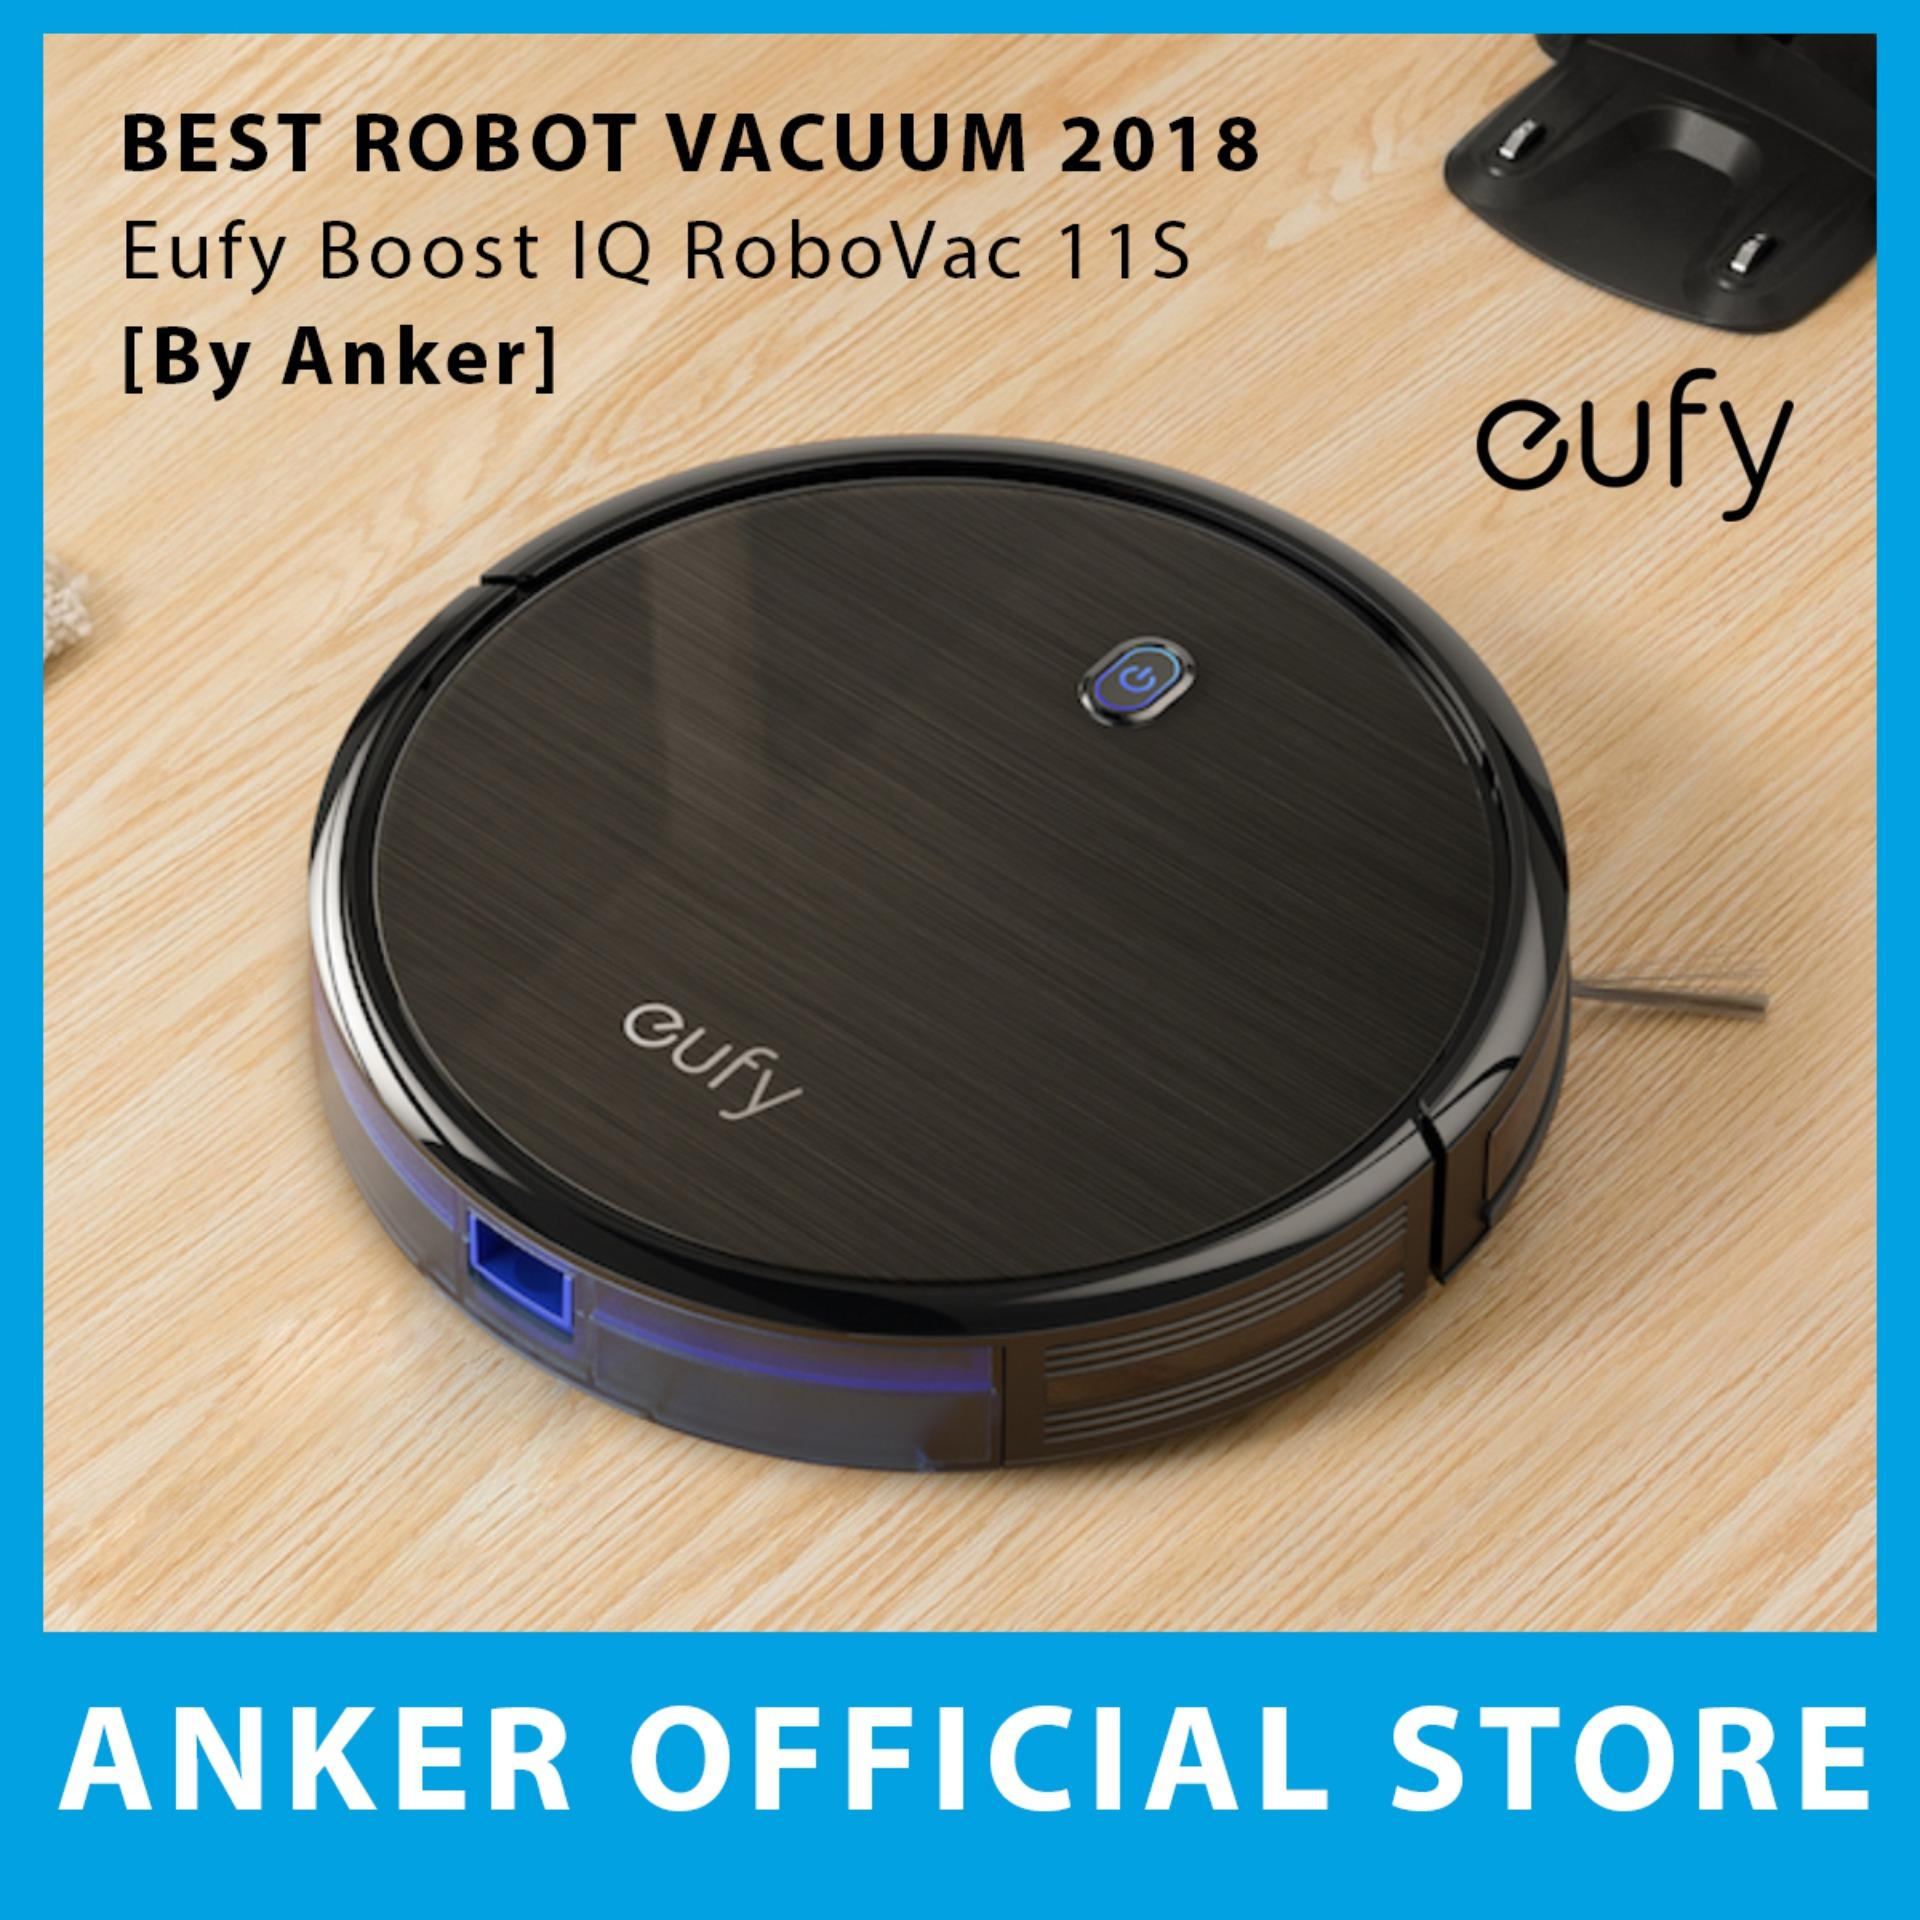 Eufy Boost Iq Robovac 11s (slim), 1300pa Strong Suction, Super Quiet, Self-Charging Robotic Vacuum Cleaner, Cleans Hard Floors To Medium-Pile Carpets By Anker Singapore Store.